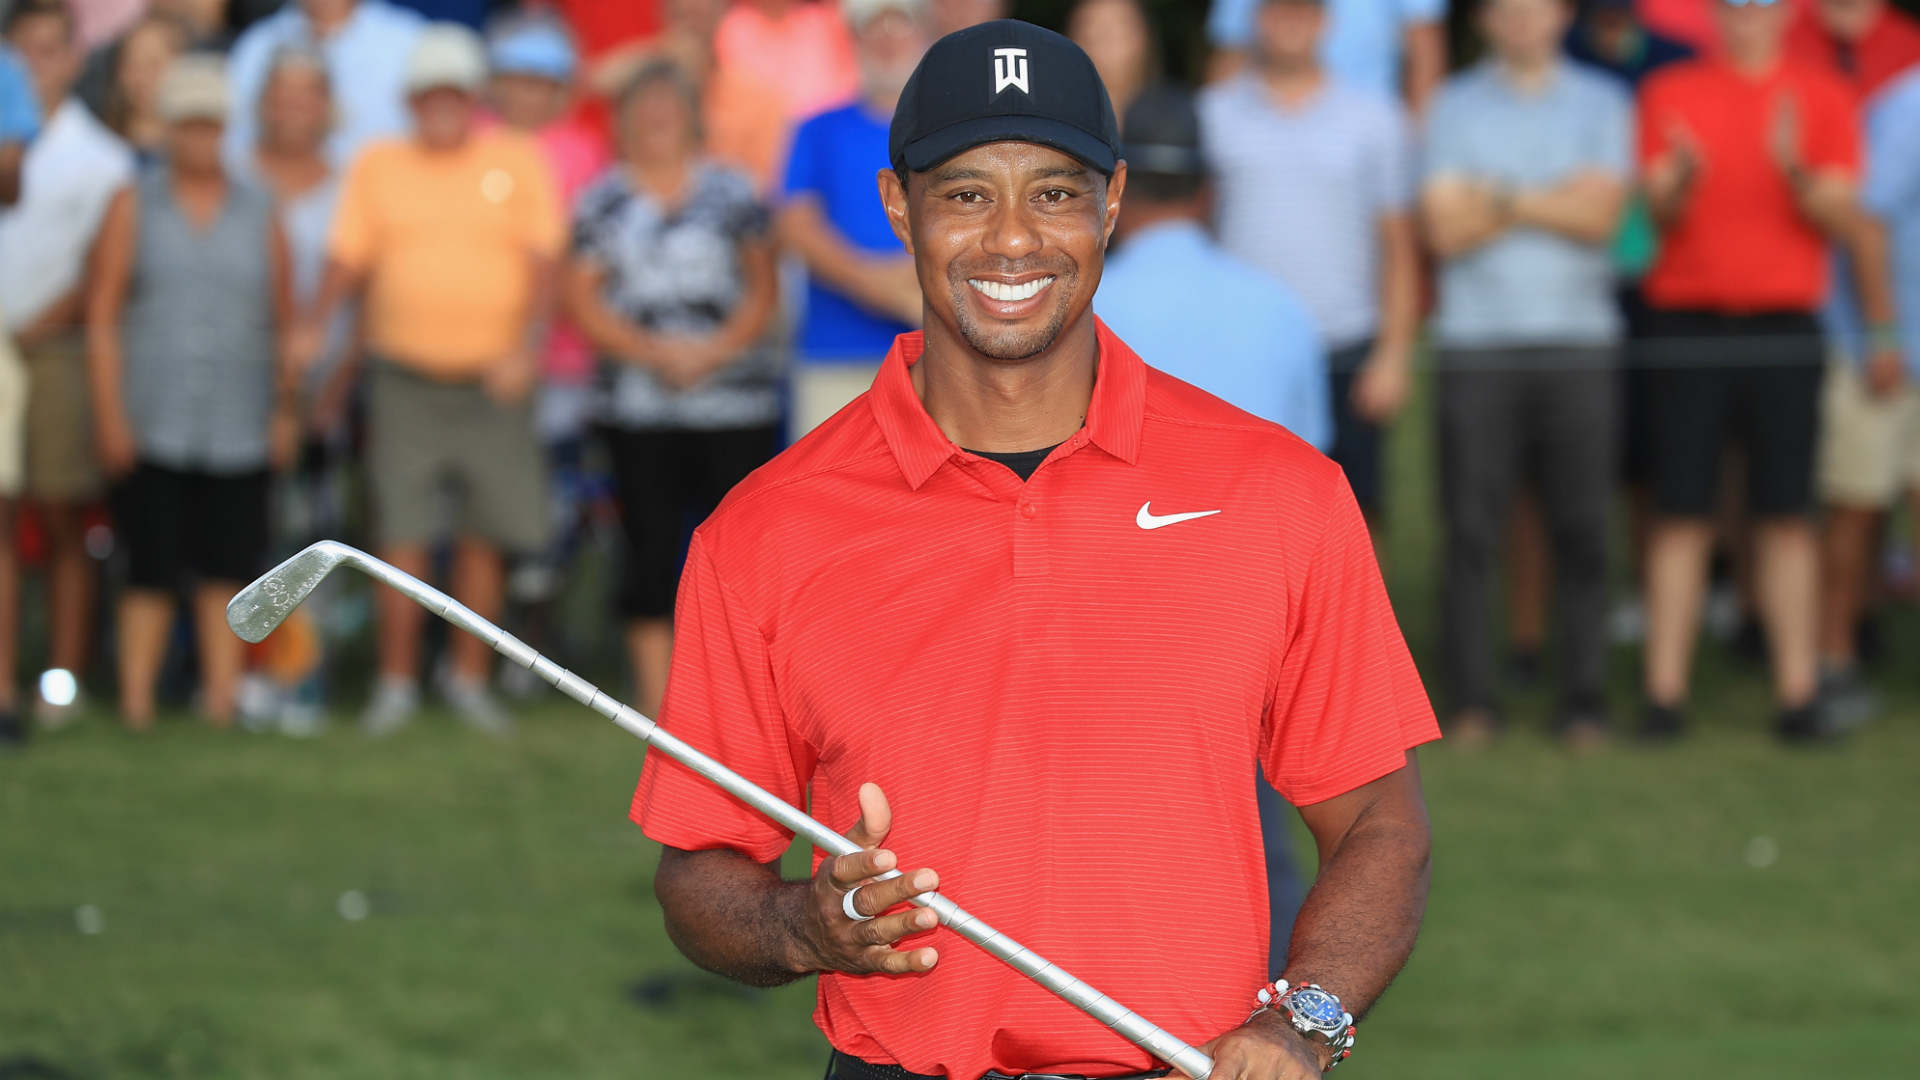 Bedlam overwhelms East Lake as Tiger Woods clinches 80th PGA Tour victory